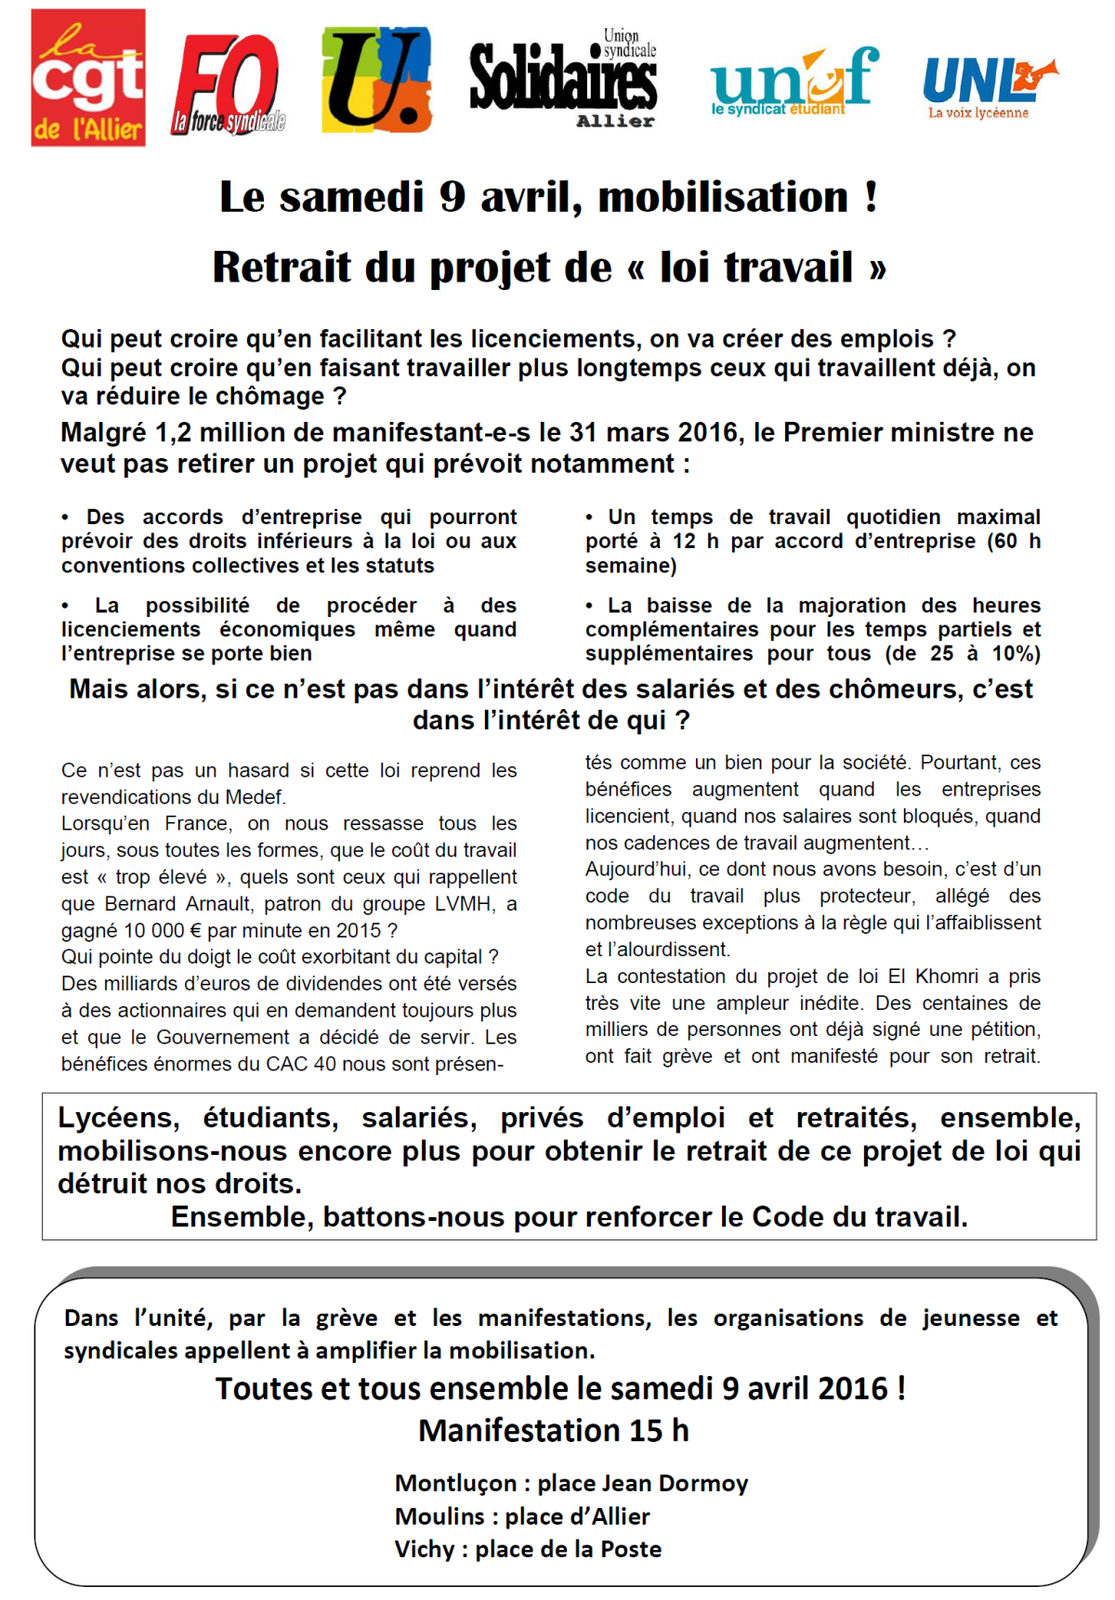 Le tract de l'intersyndical Allier pour la manifestation du 9 avril